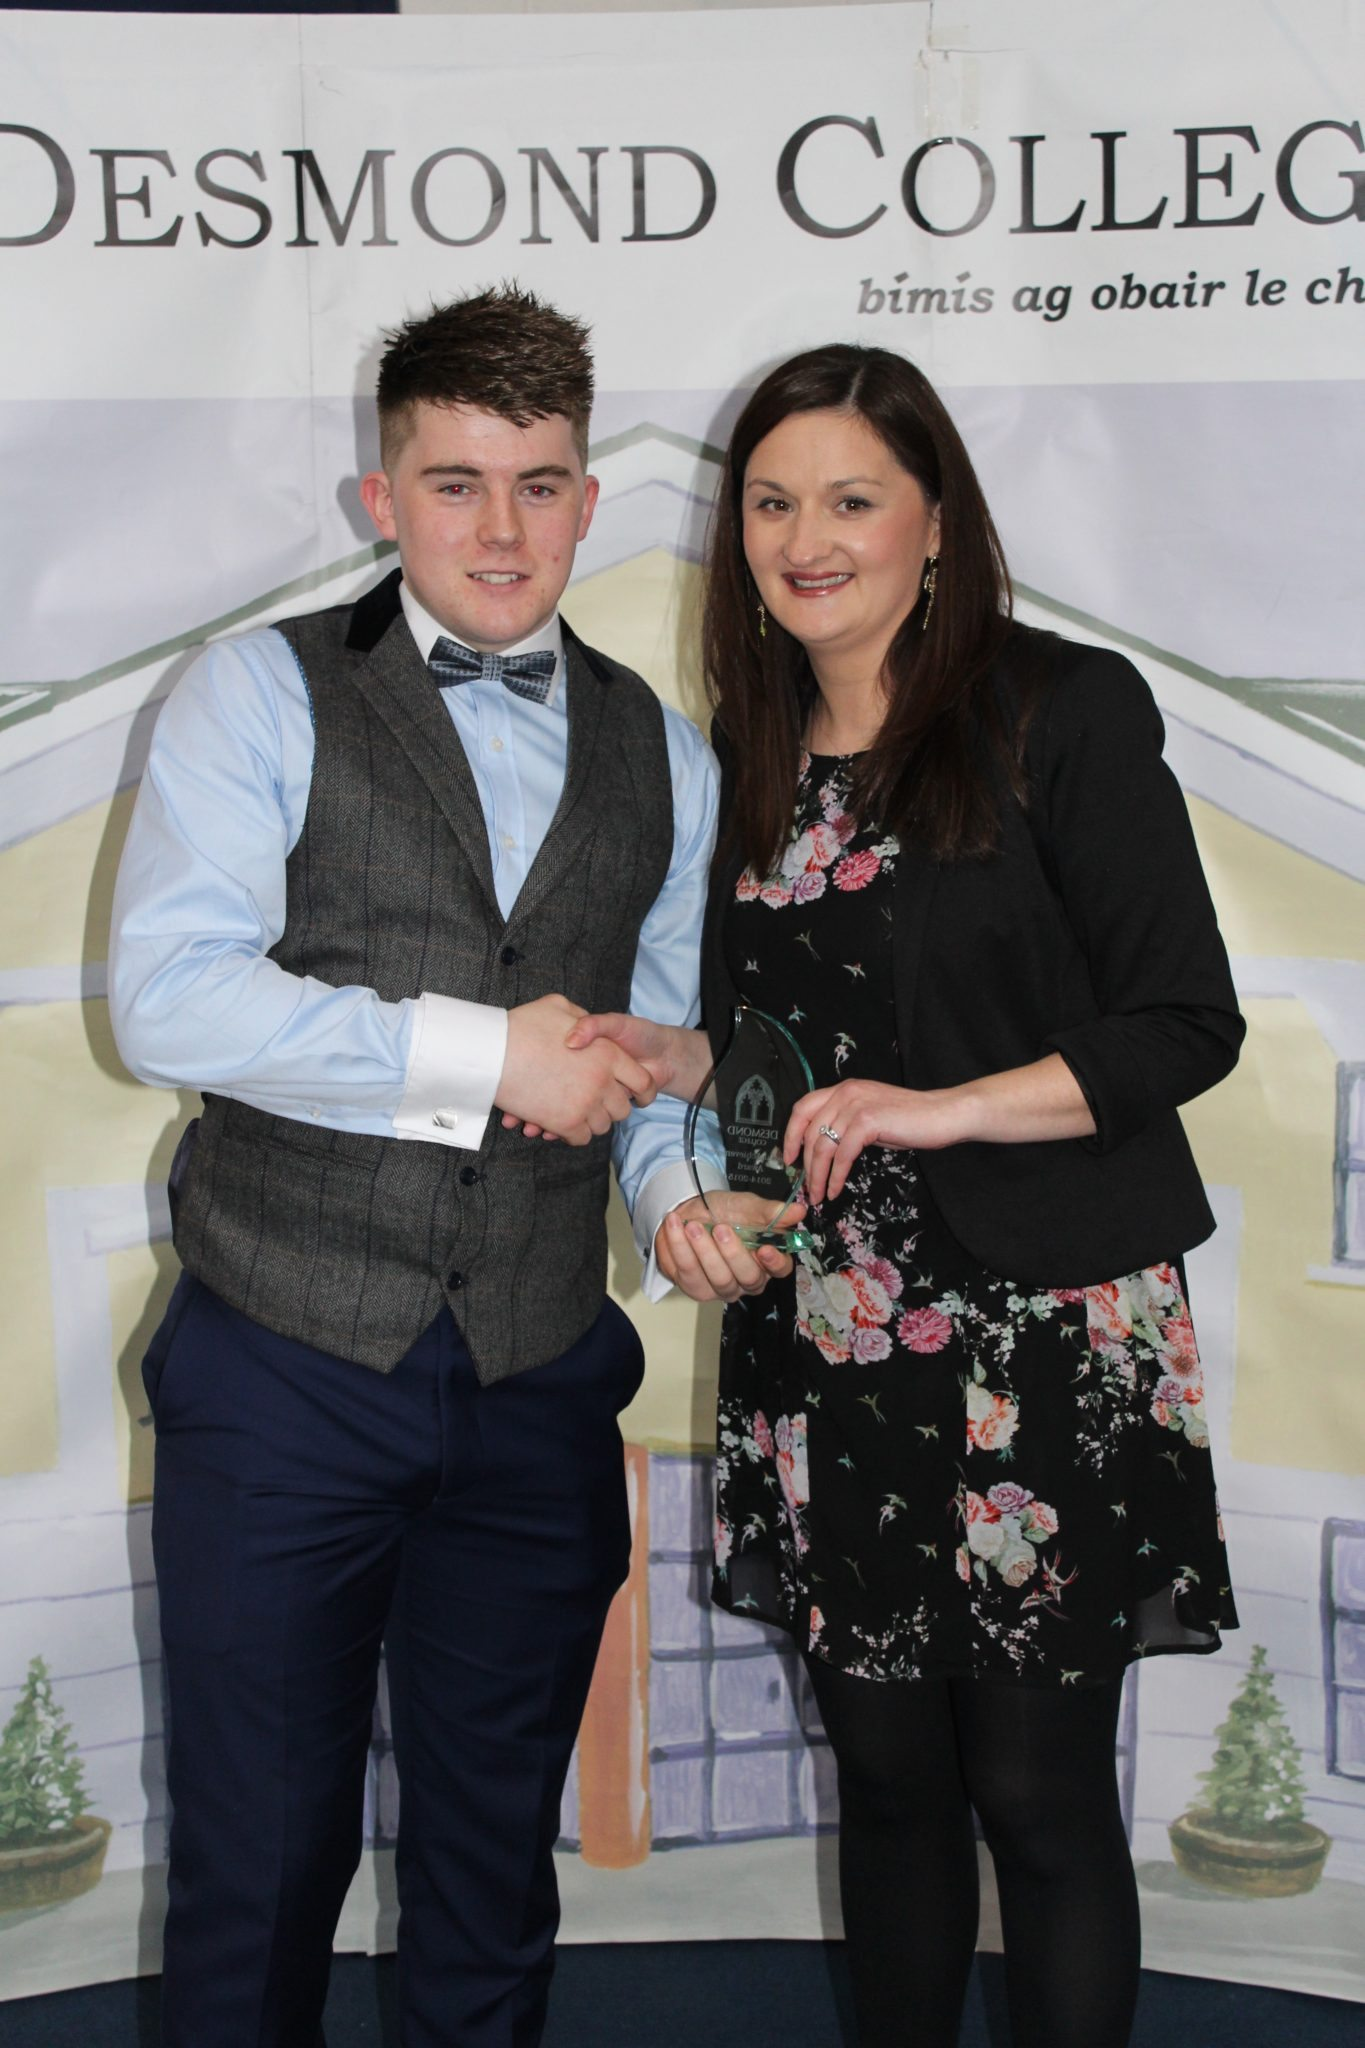 Desmond College Leaving Certificate Graduation 2015: Co-operation and Dilligence Award: Kieran Herlihy with Ms O'Mahoney